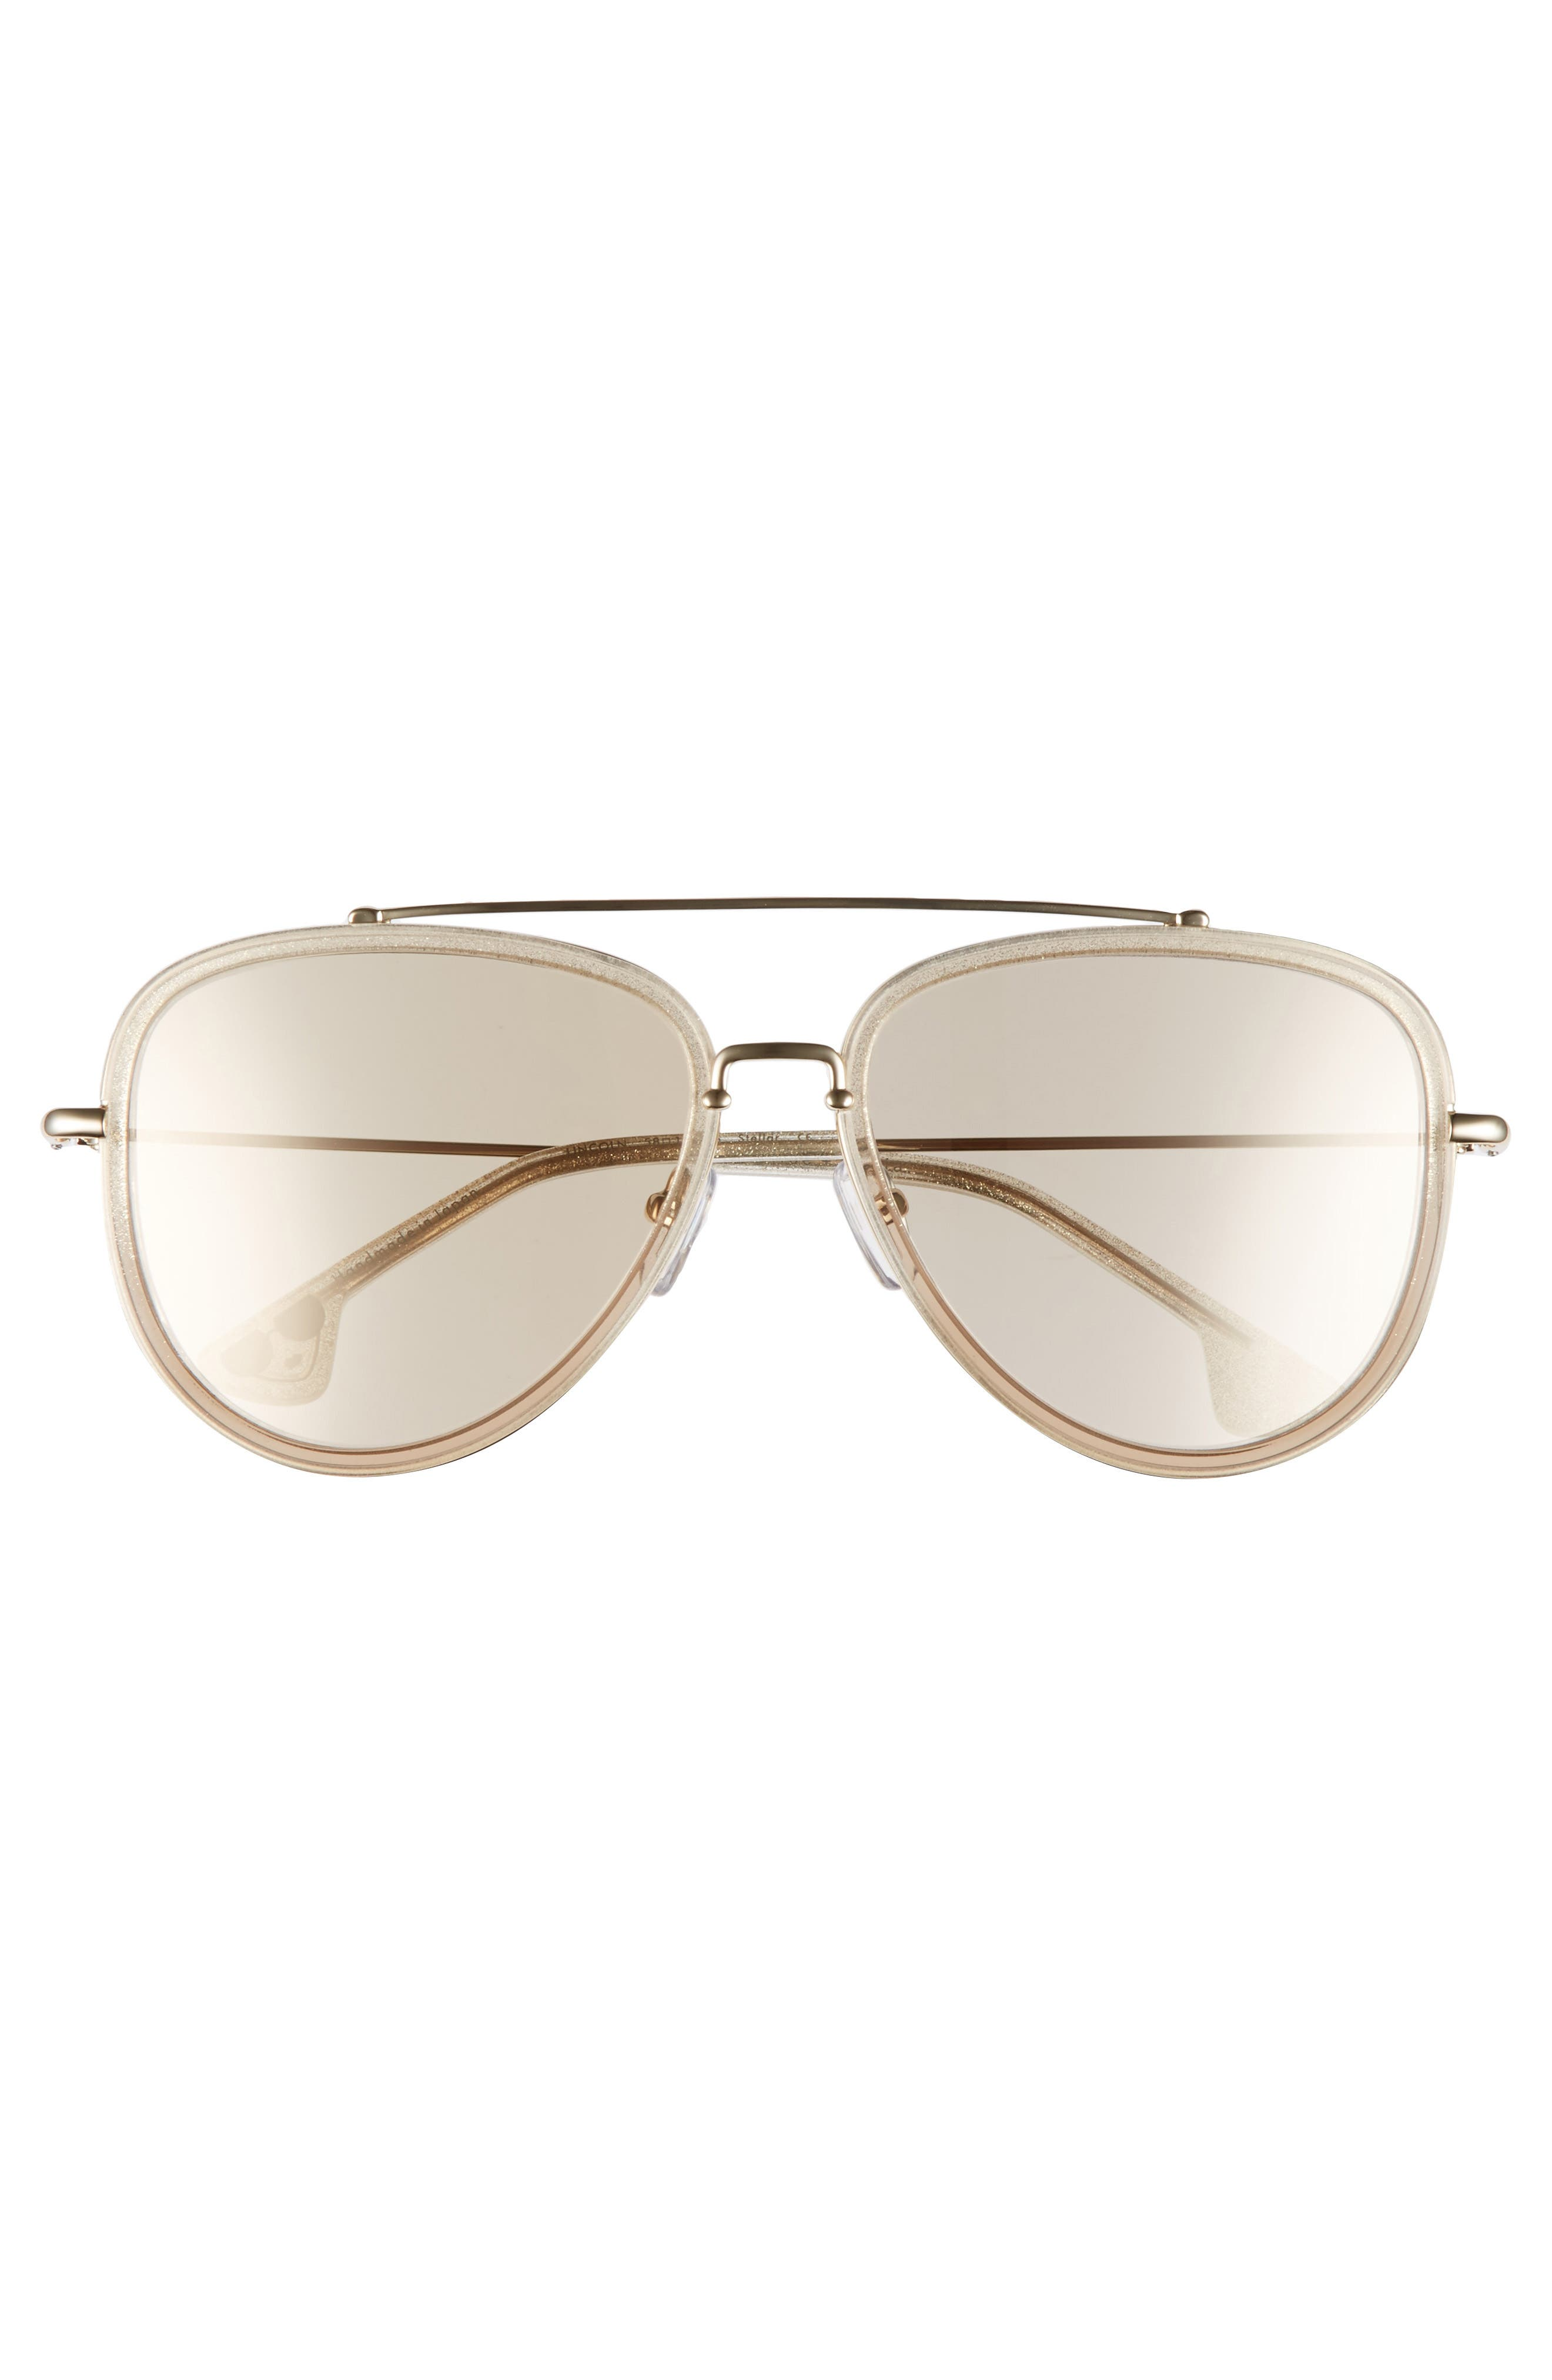 Lincoln 58mm Aviator Sunglasses,                             Alternate thumbnail 12, color,